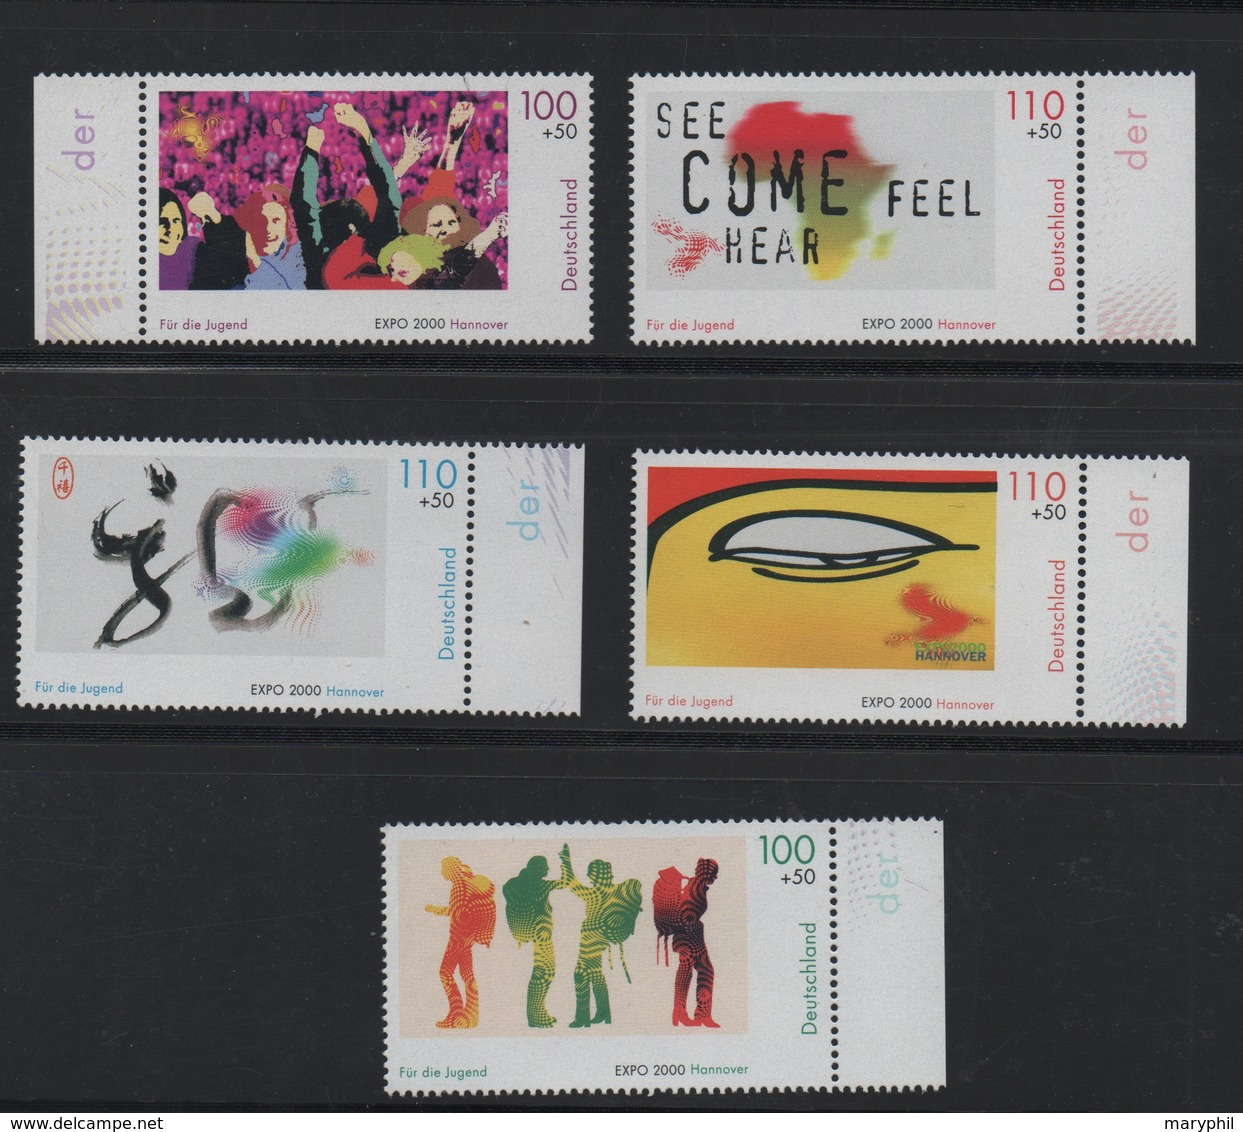 LOT 193 - ALLEMAGNE   N° 1950/1955 ** -  EXPOSITIONS UNIVERSELLES HANOVRE - COTE 18 € - 2000 – Hanover (Germany)